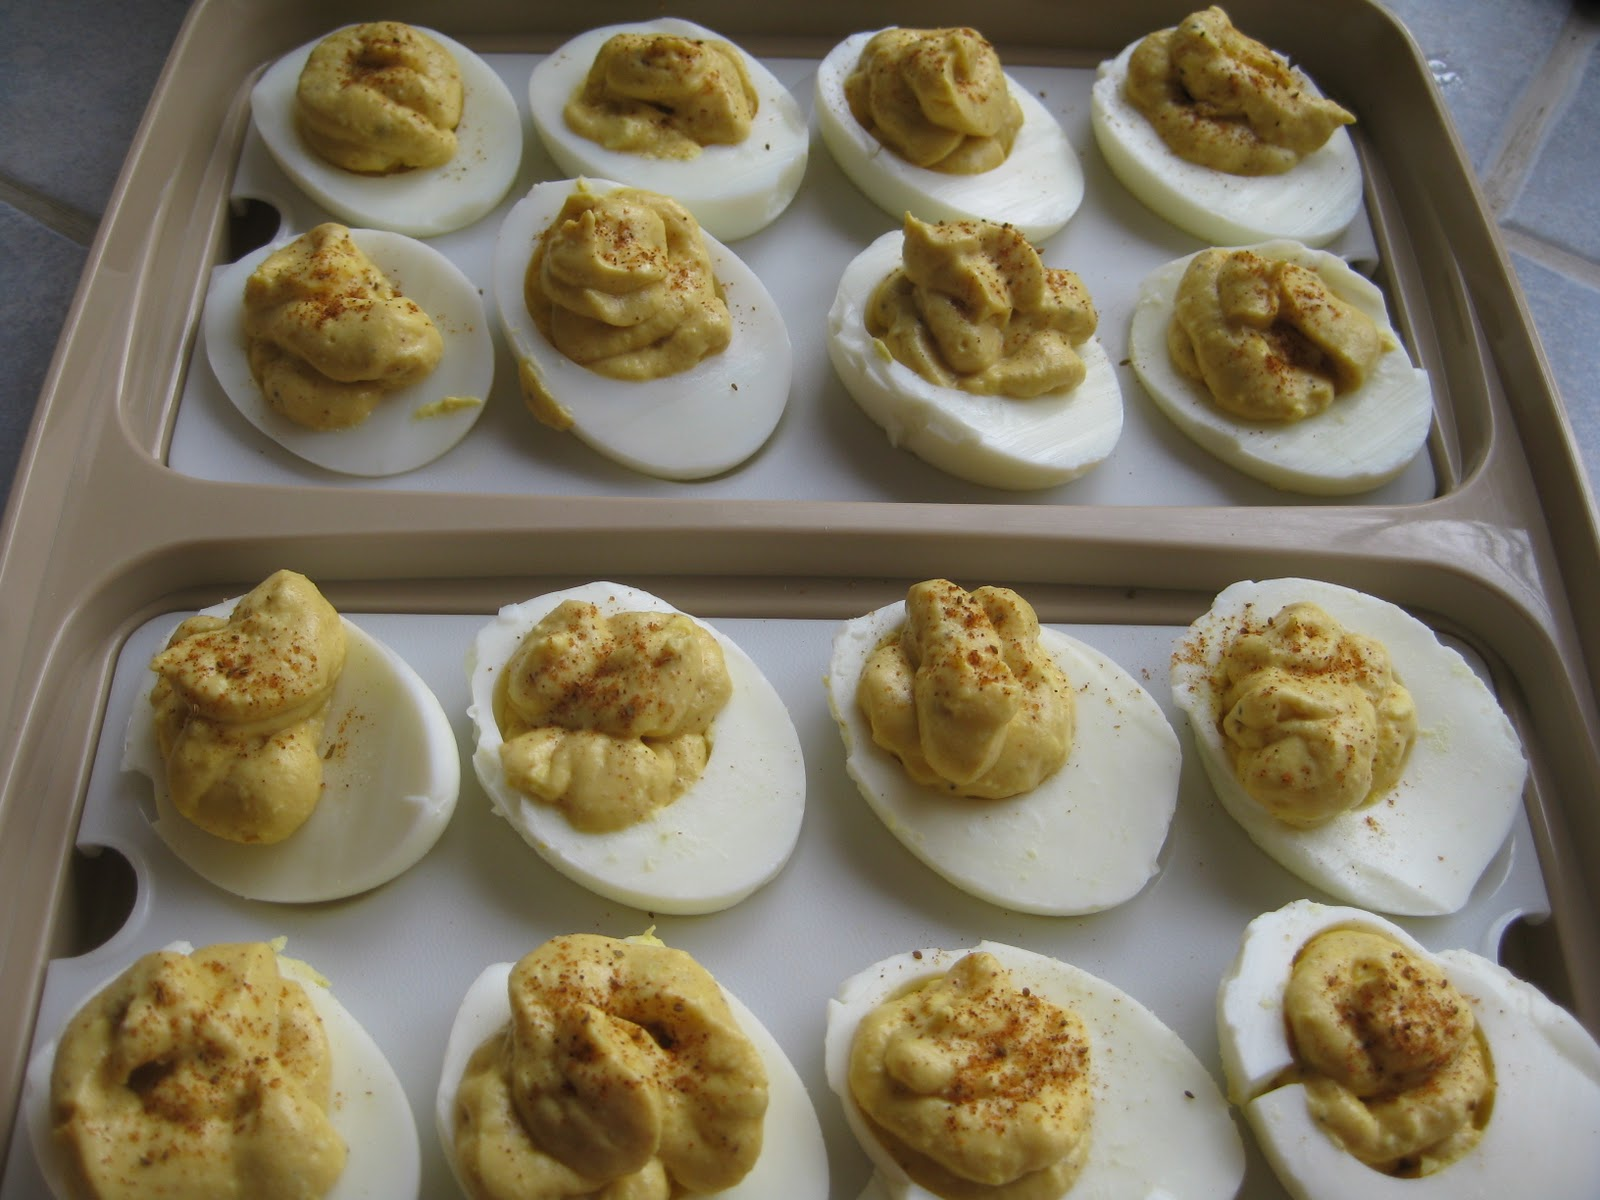 ... eggs sriracha deviled eggs old bay deviled eggs deviled eggs old bay